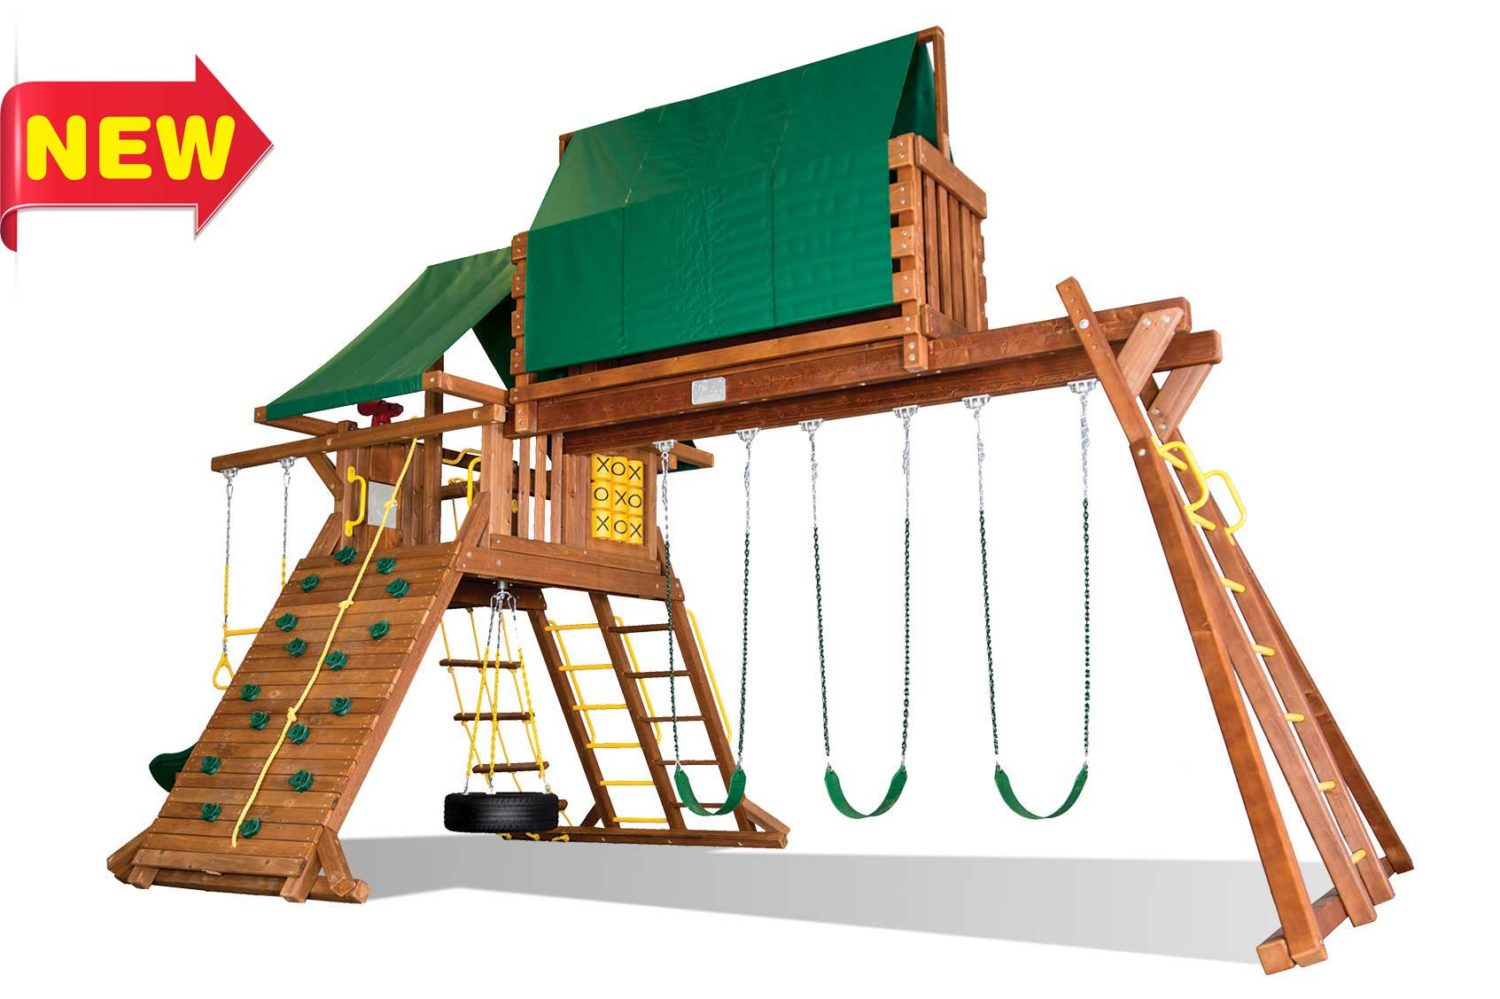 Circus Super Turbo Castle Wooden Swing Sets